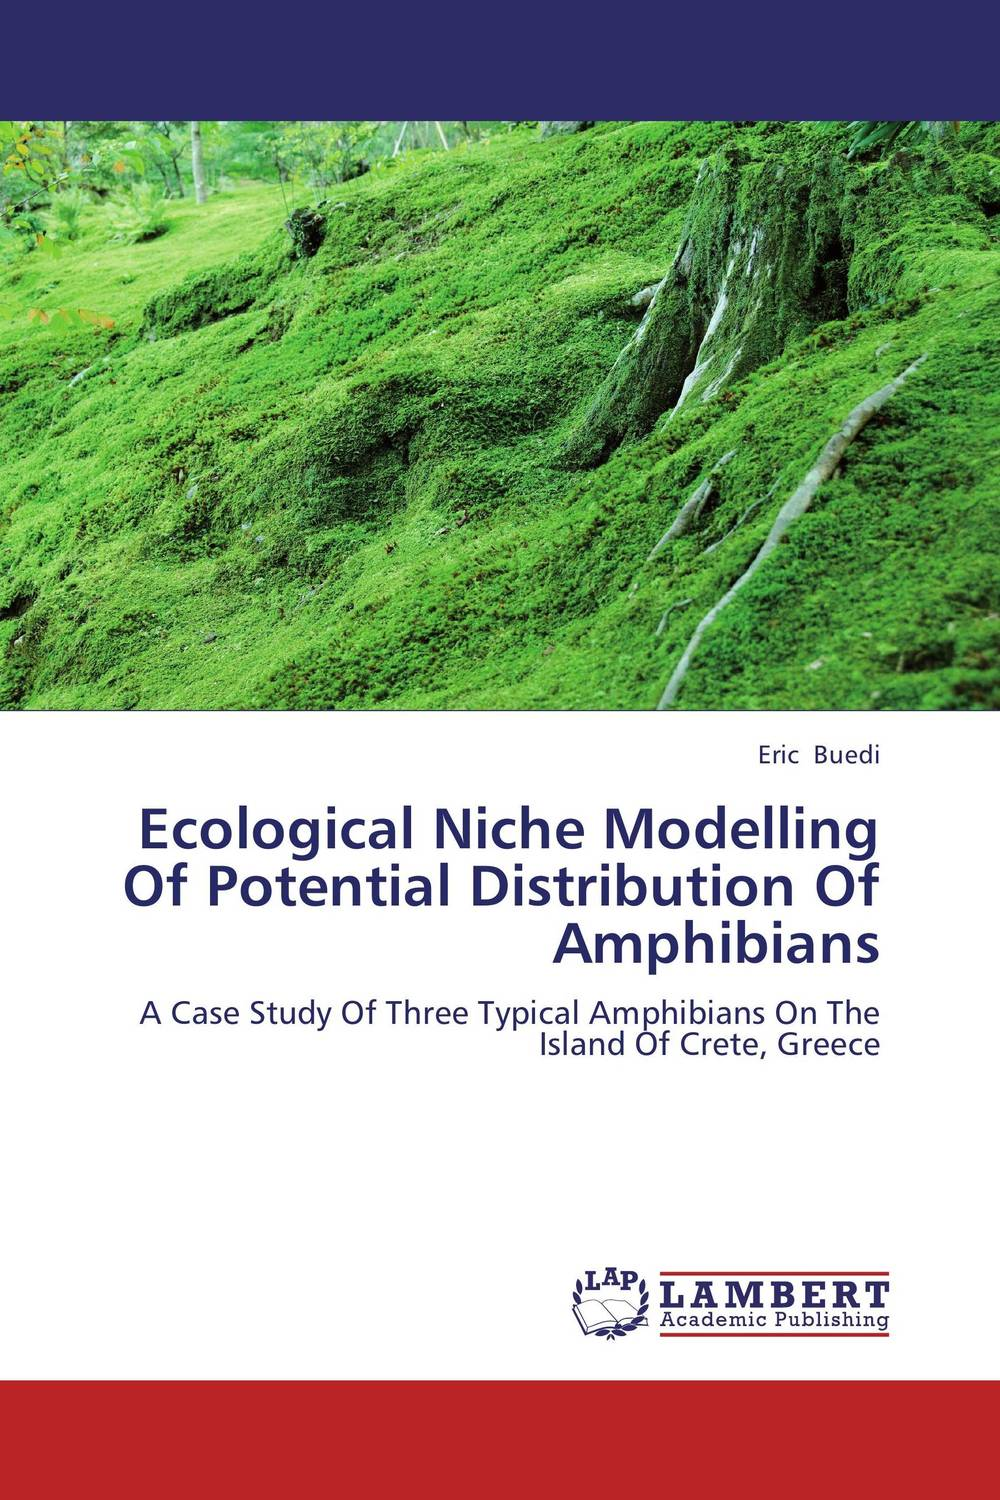 Ecological Niche Modelling Of Potential Distribution Of Amphibians